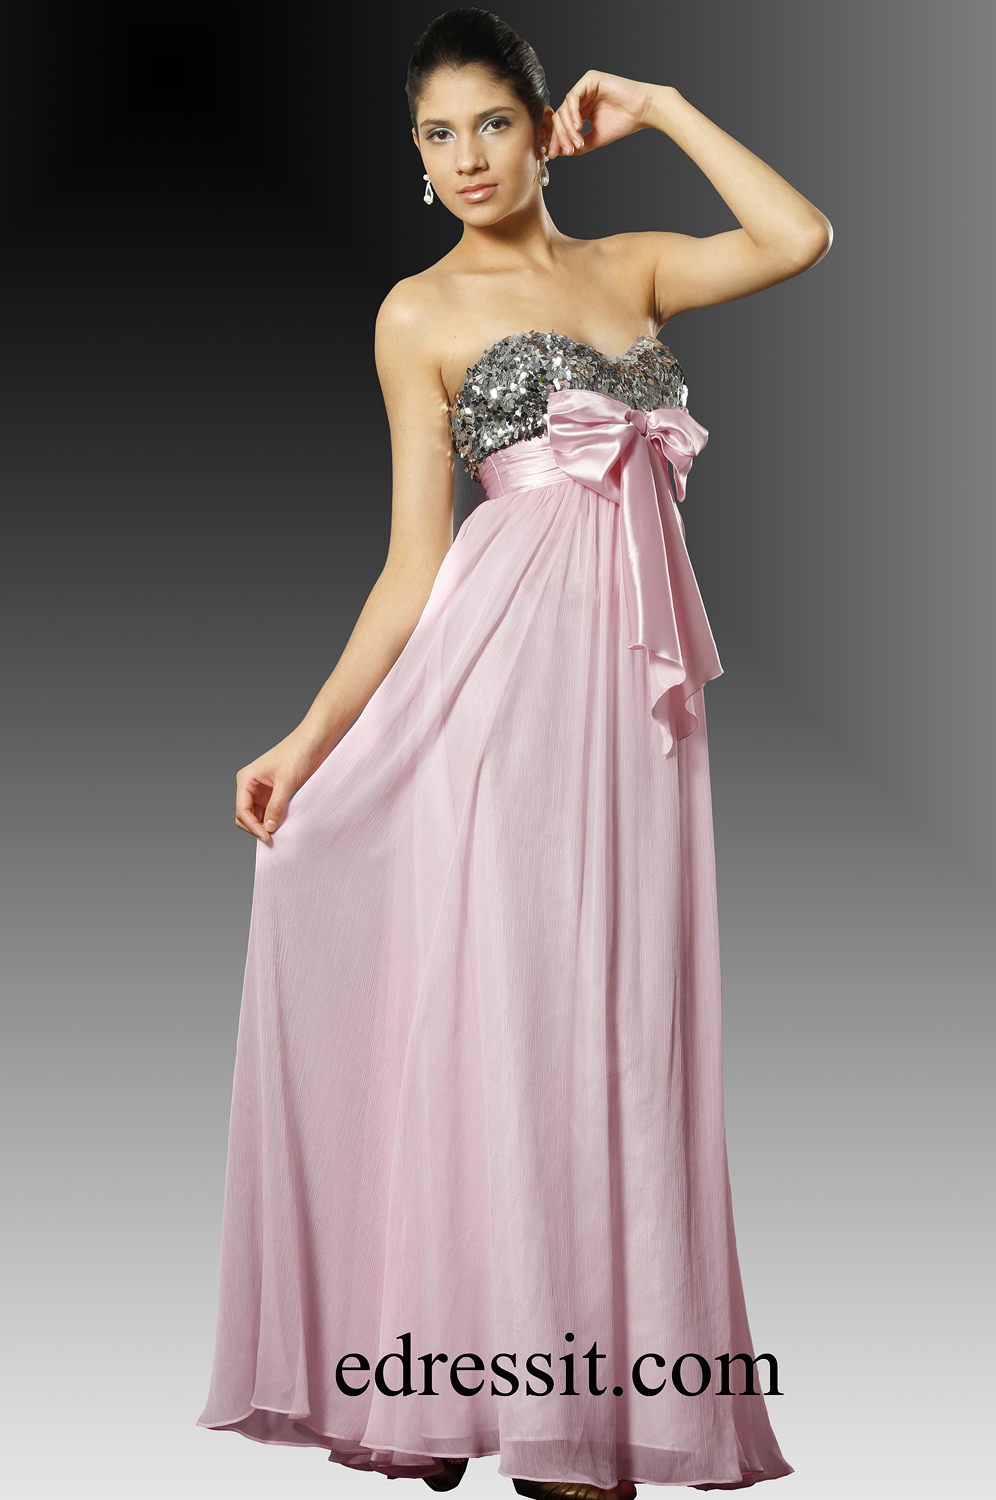 On sale !! eDressit Celebrity Sexy Prom Gown Evening Dress (00098801f)